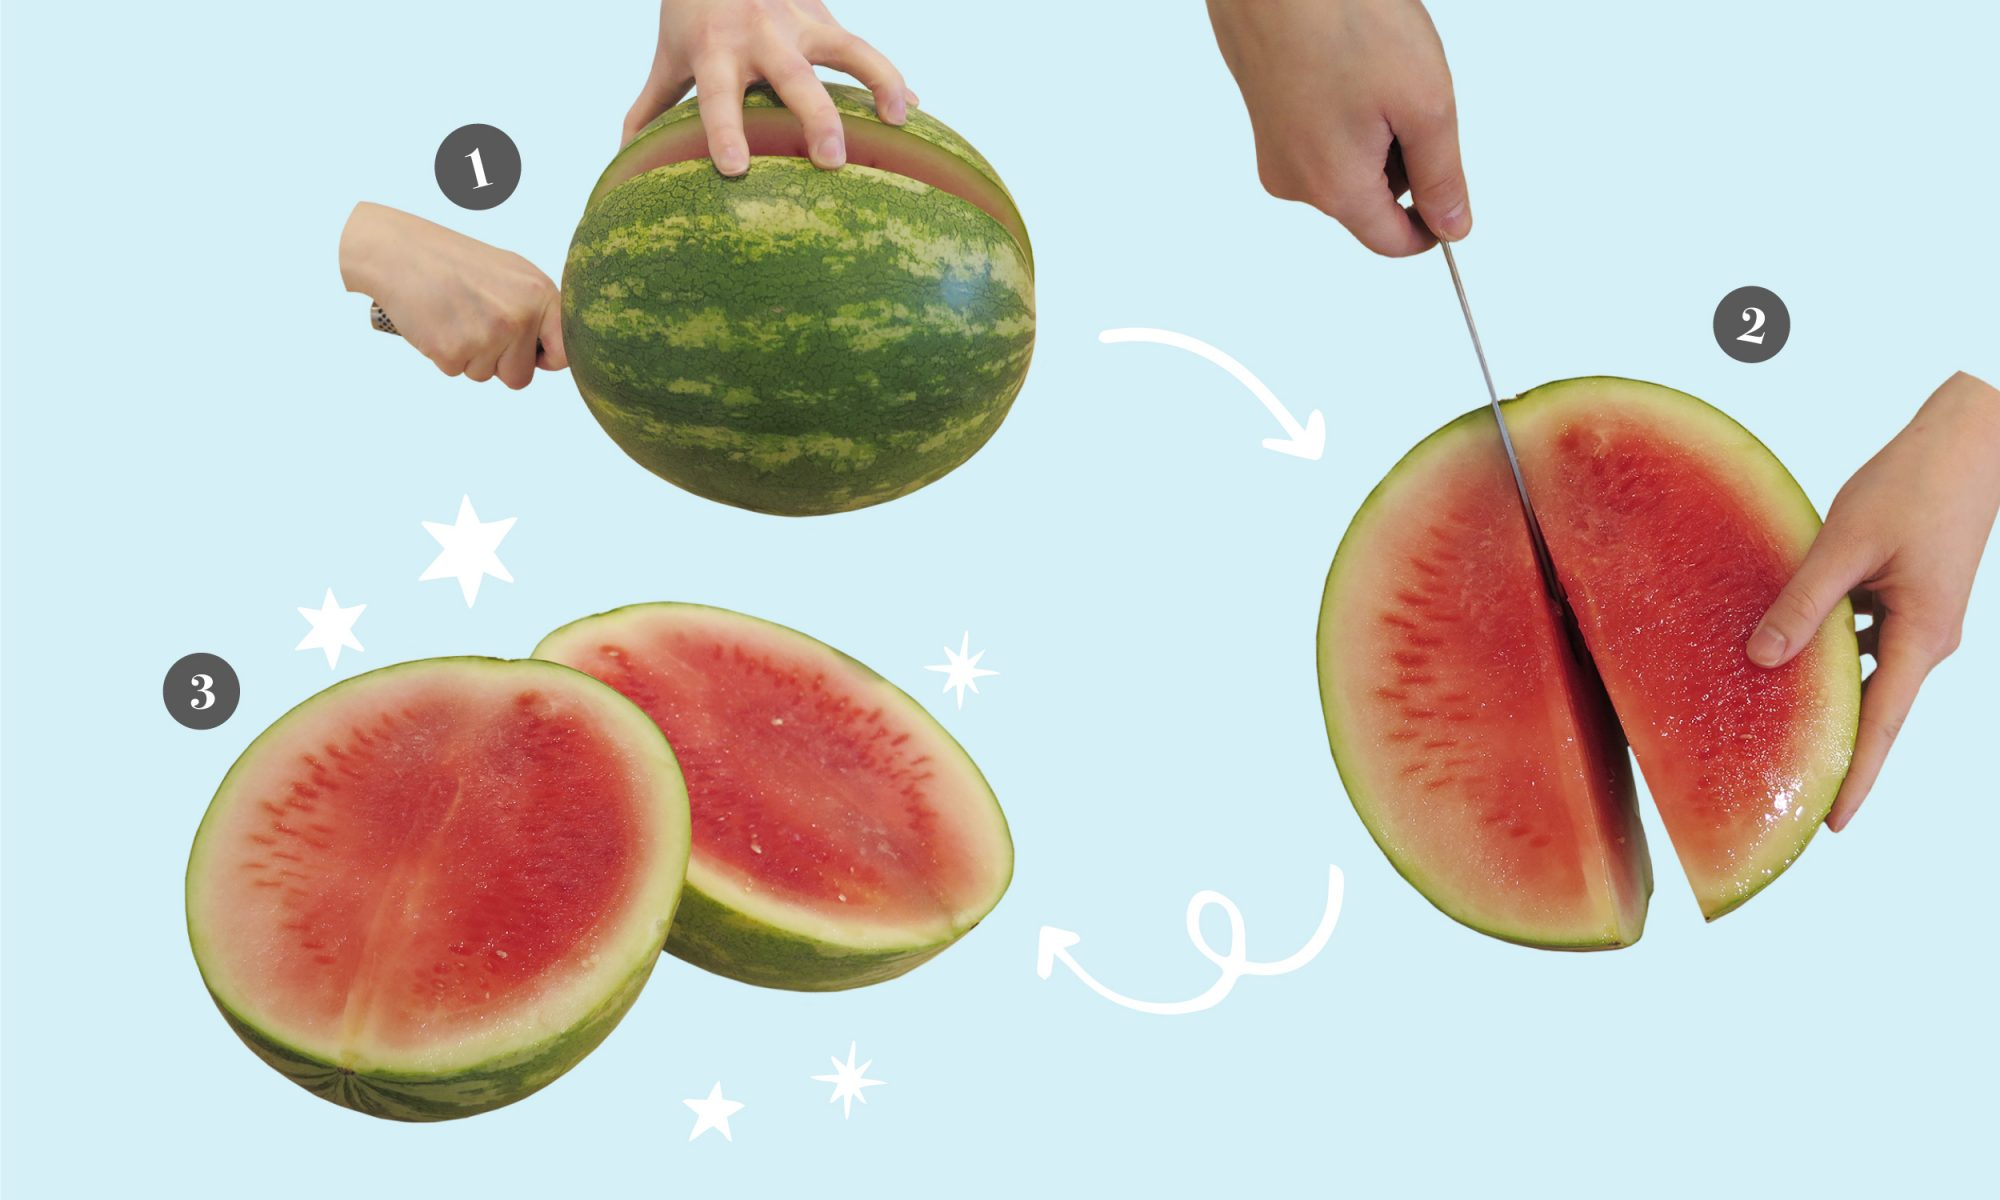 EC: How to Cut a Watermelon Into Bite-Size Pieces